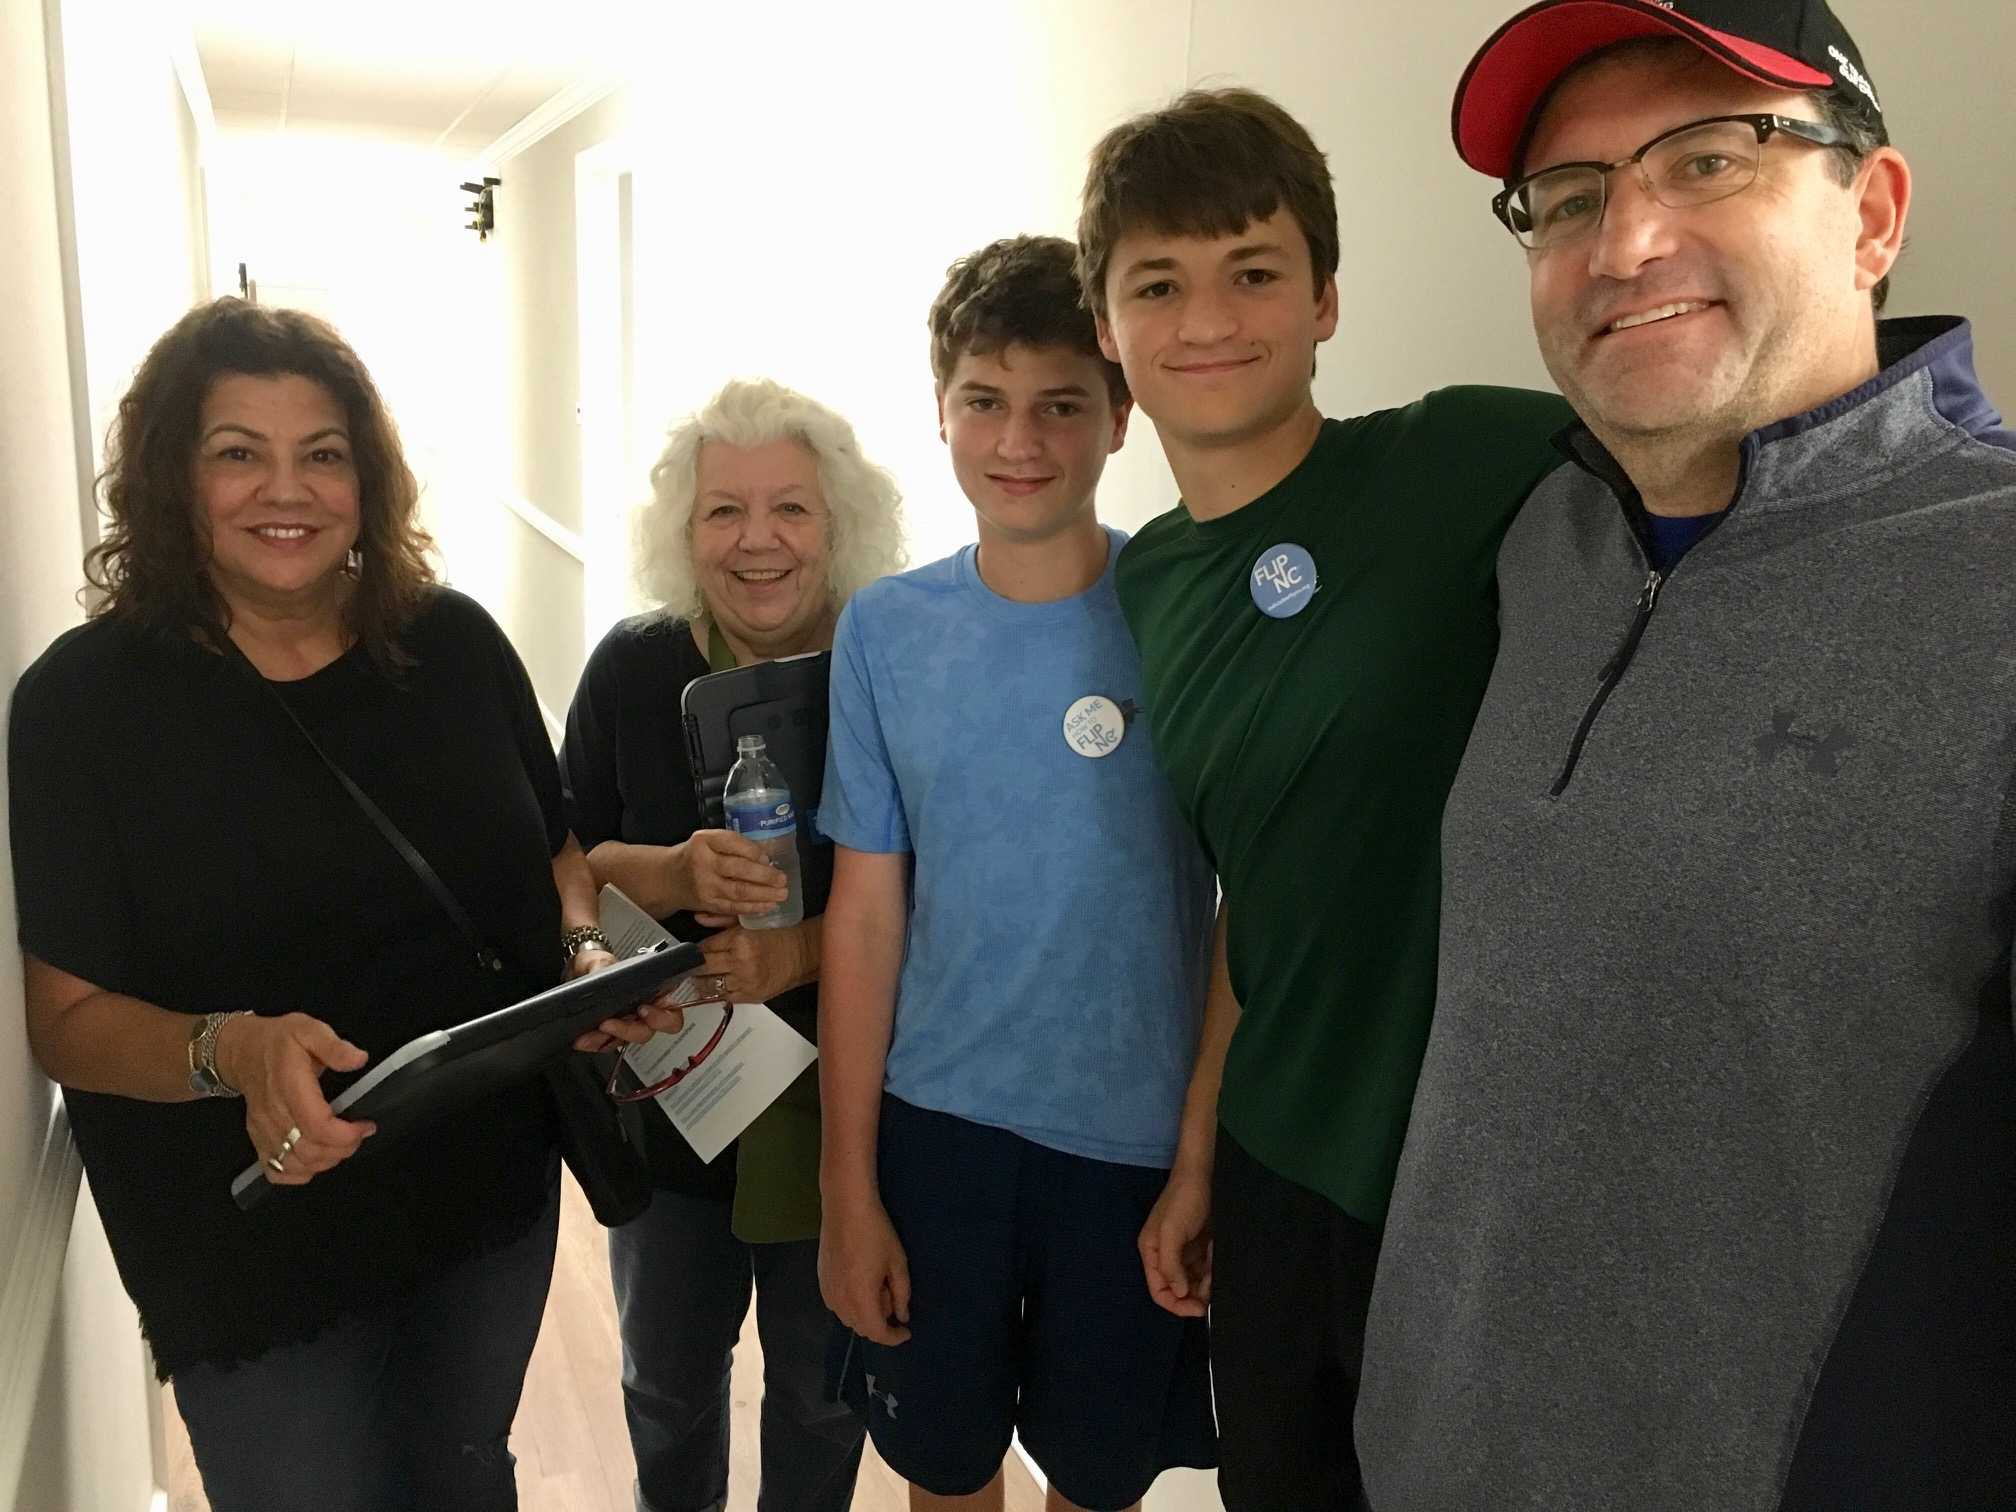 Canvassers Dana Carvalho and Nancy Spencer with Matt, Jake, and their dad